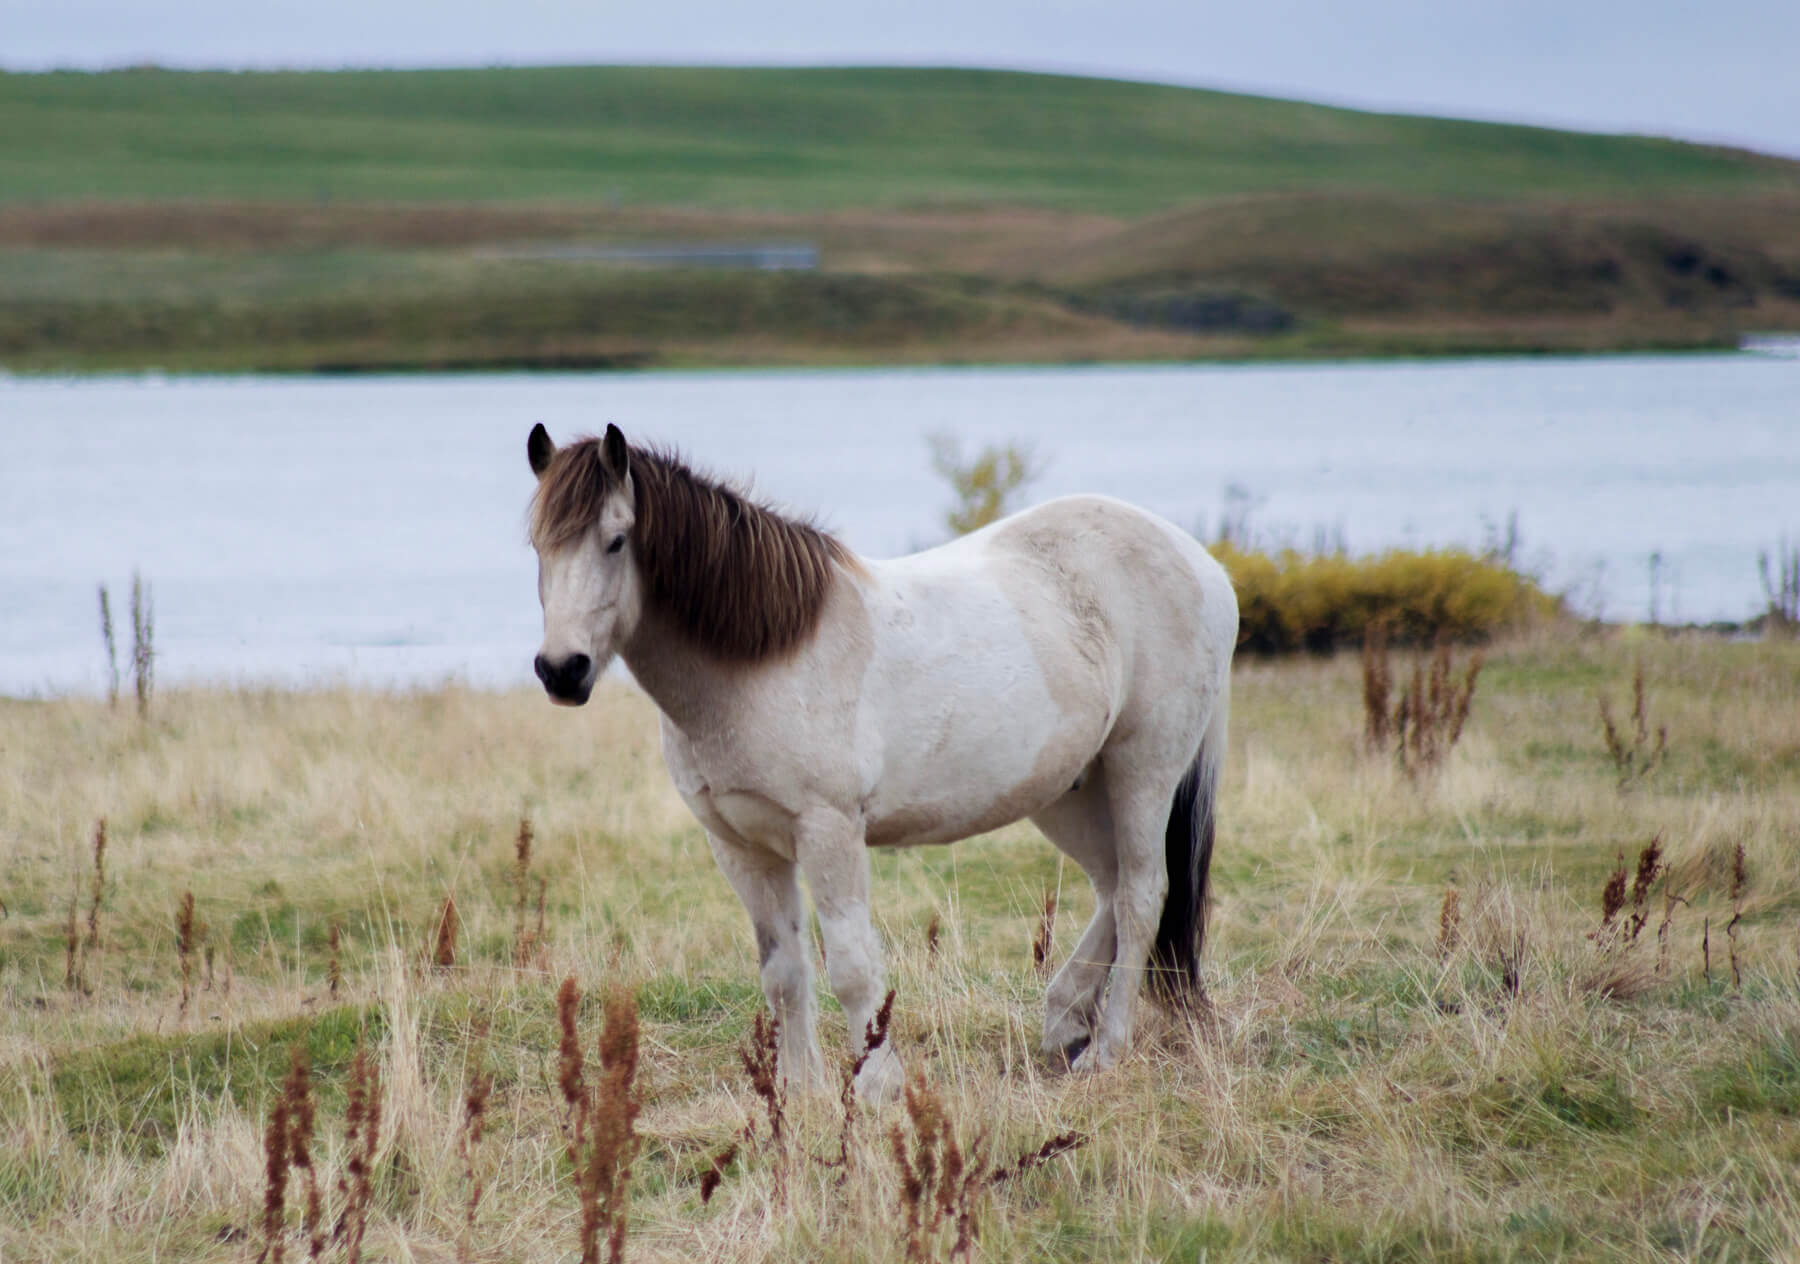 A happy Icelandic Horse standing in a field